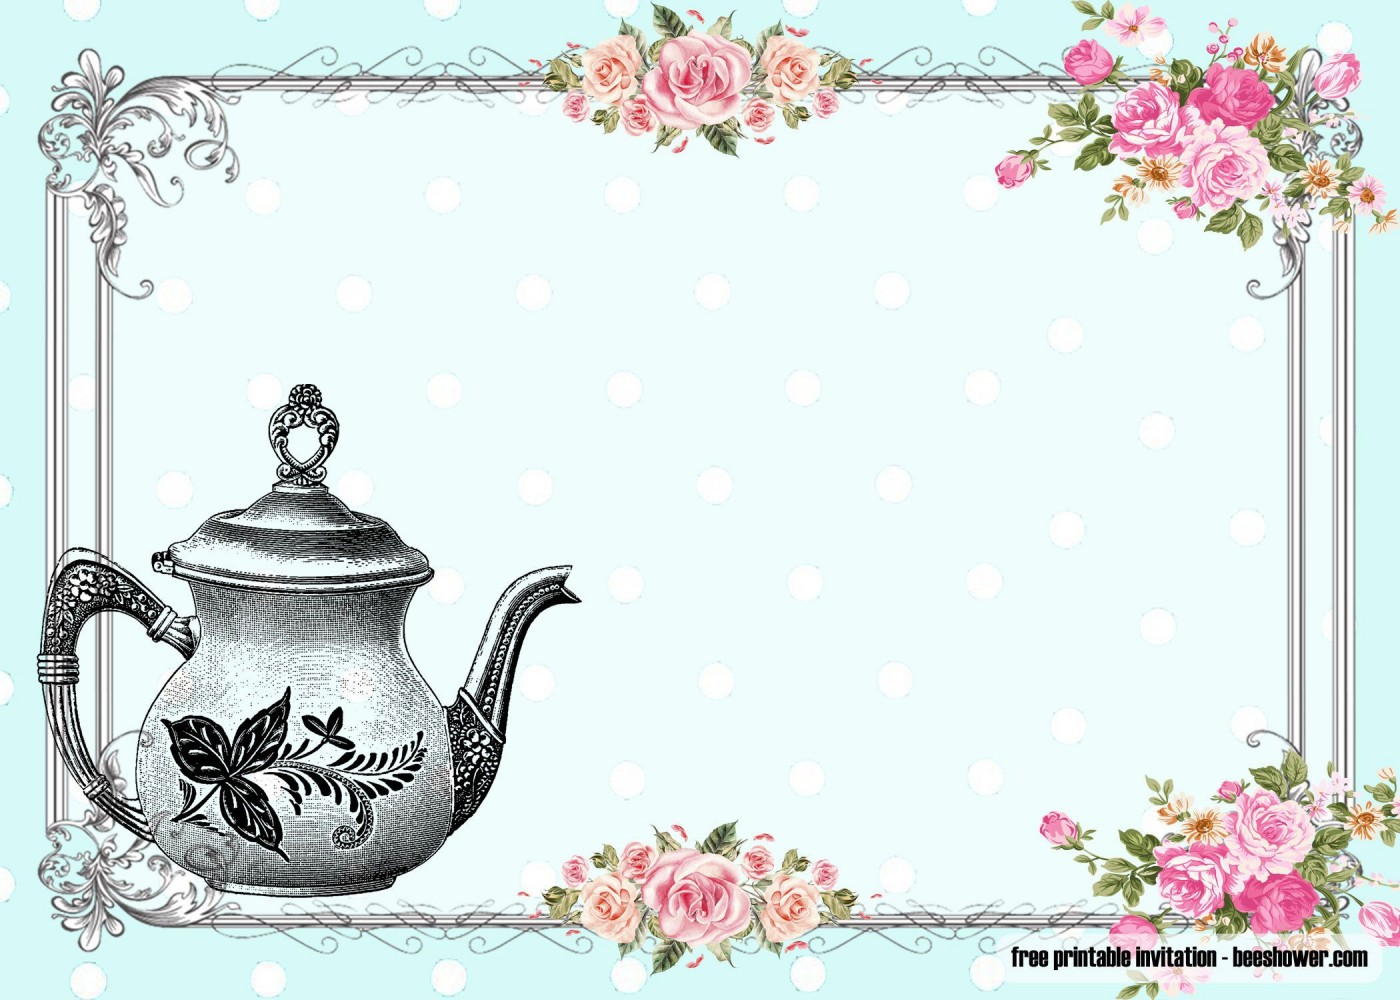 010 Awful Tea Party Invitation Template Idea  Vintage Free Editable Card Pdf1400